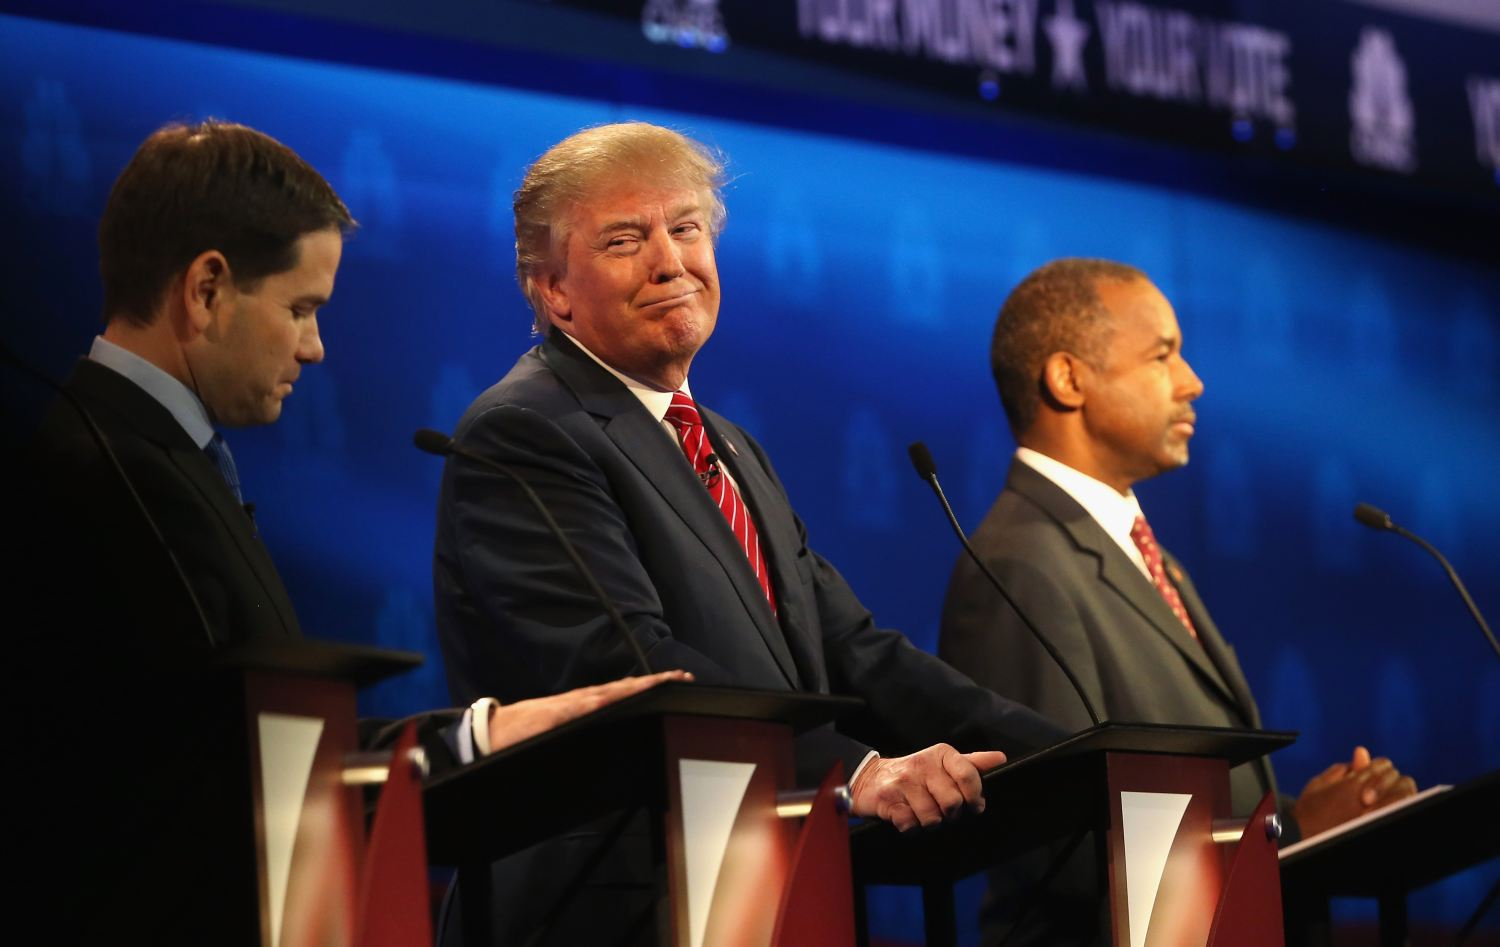 Presidential candidates Marco Rubio, Donald Trump and Ben Carson took the stage at the CNBC Republican Presidential Debate on Oct. 28, 2015, in Boulder, Colo. (Getty Images)